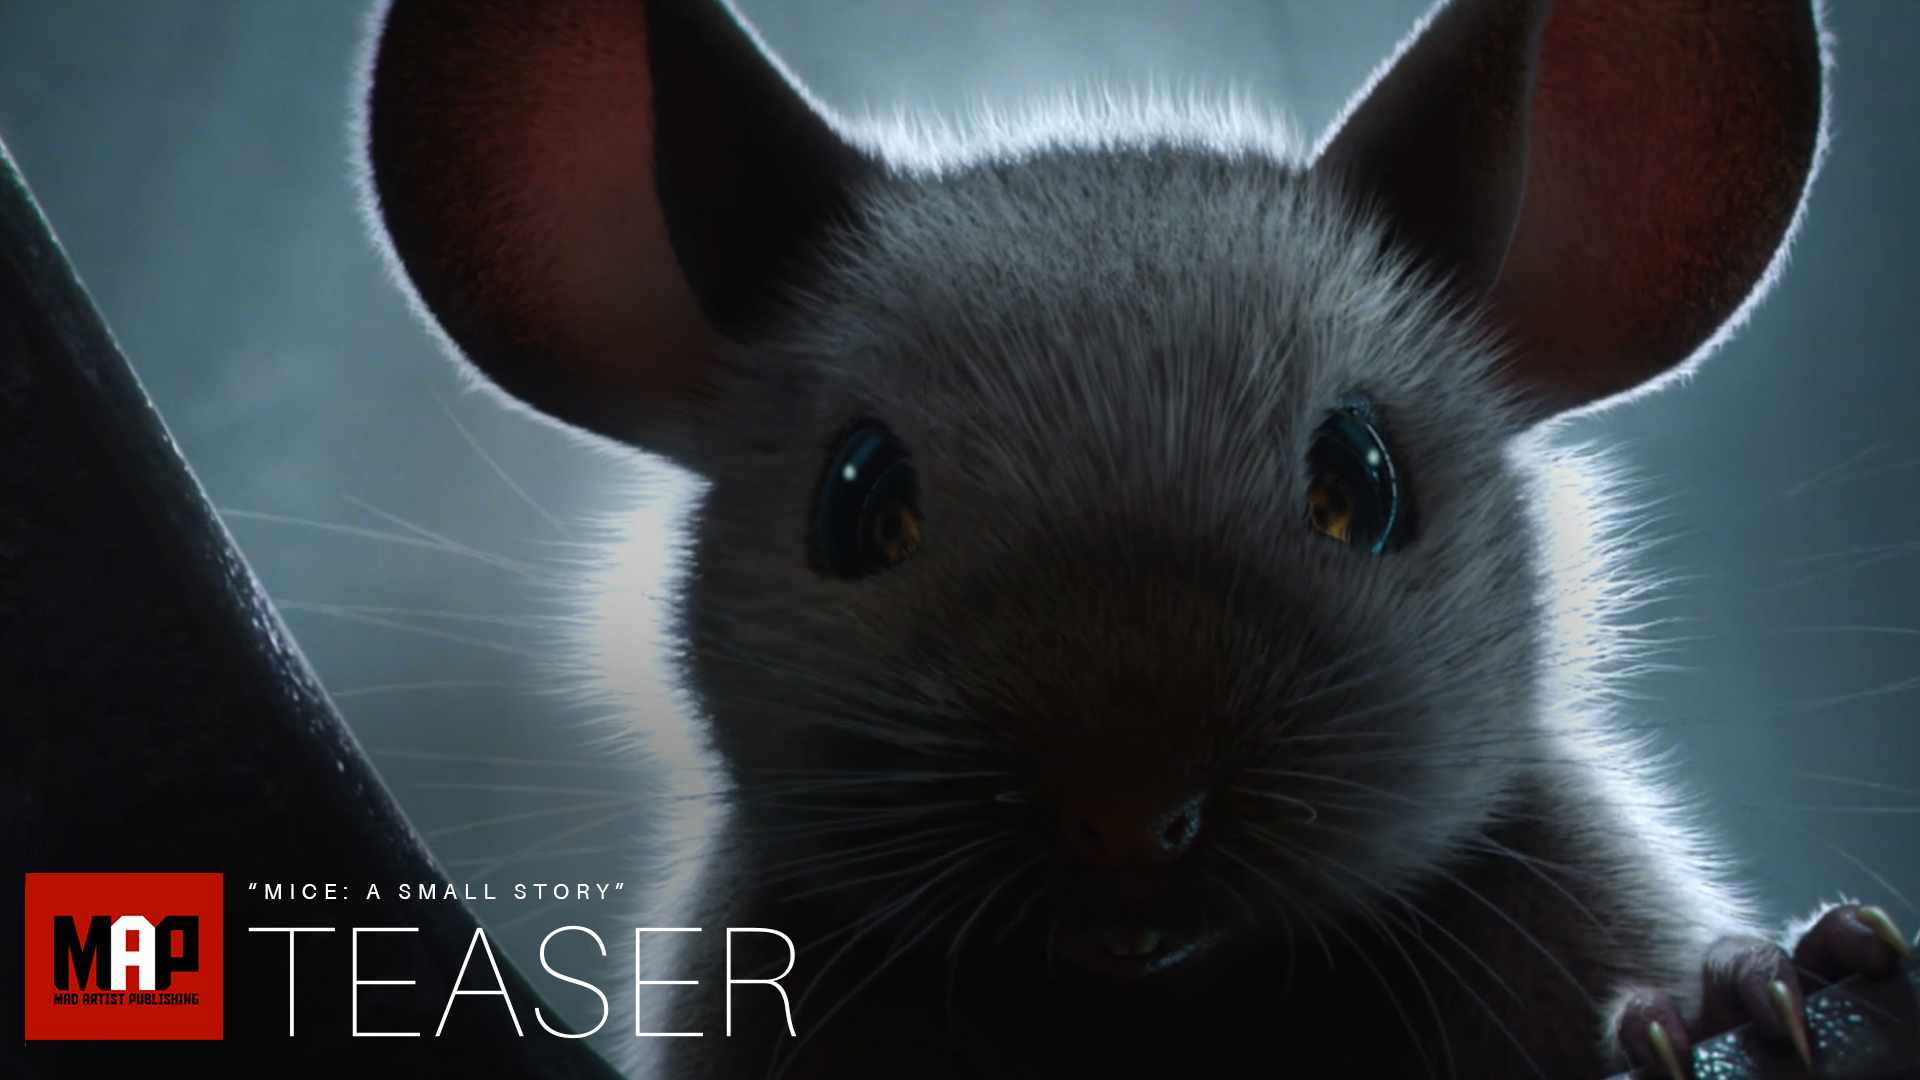 TRAILER | CGI 3d Animated Adventure Film ** MICE: A Small Story ** Animation by Objectif 3D